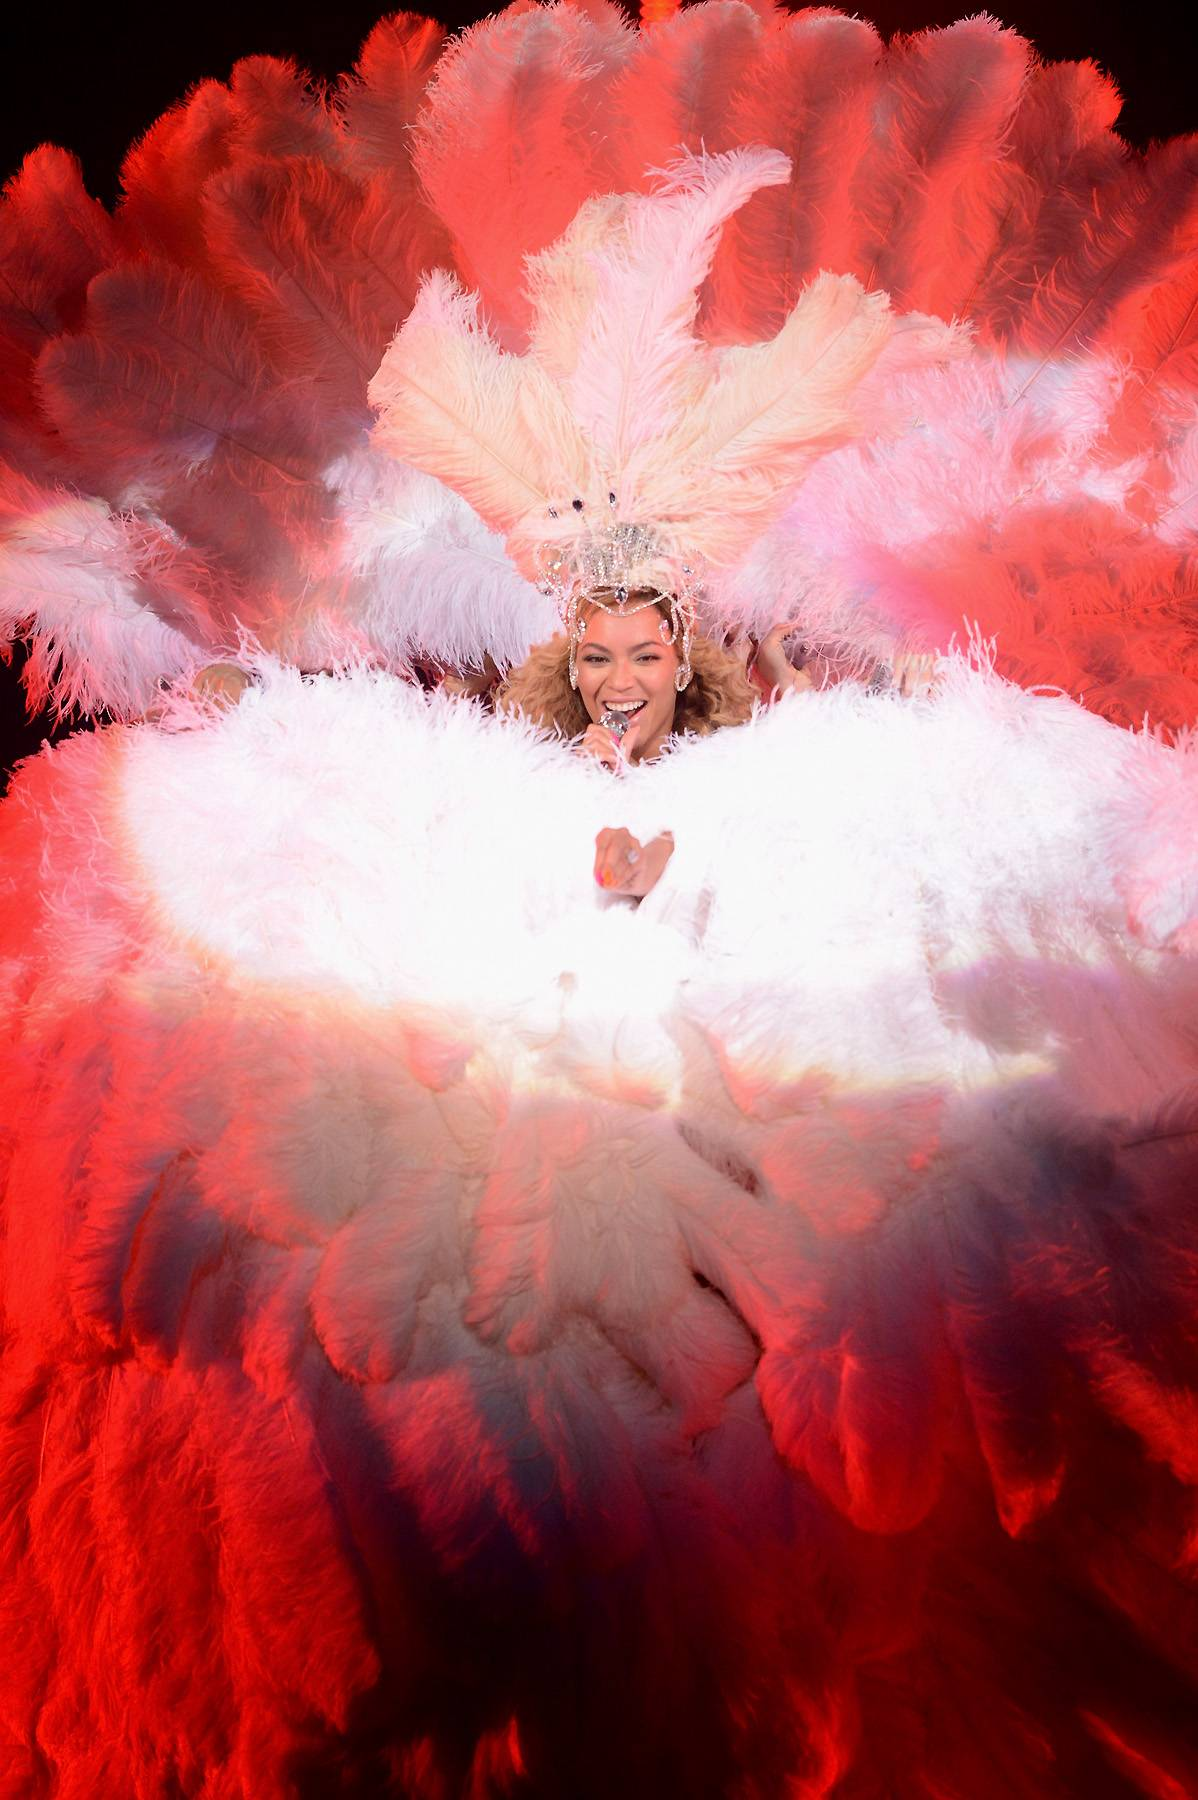 Show Stopper - Beyonc? channels her inner showgirl in a feathery costume while performing this weekend at Atlantic City?s newly launched Revel resort in her first concerts since giving birth to daughter Blue Ivy.  (Photo: Kevin Mazur/WireImage)